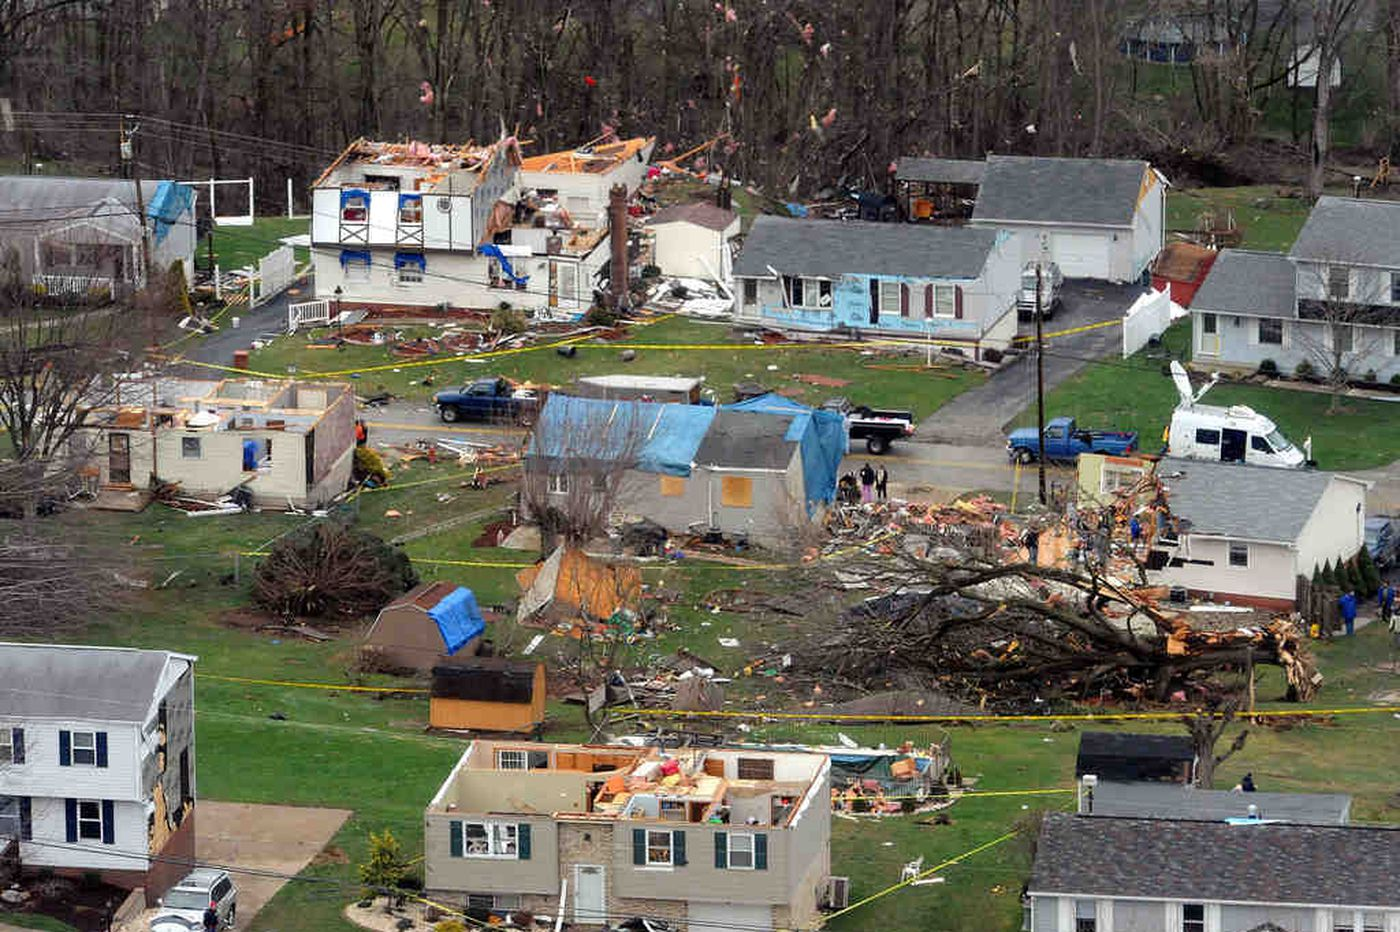 Pennsylvania has already seen yearly average of tornadoes